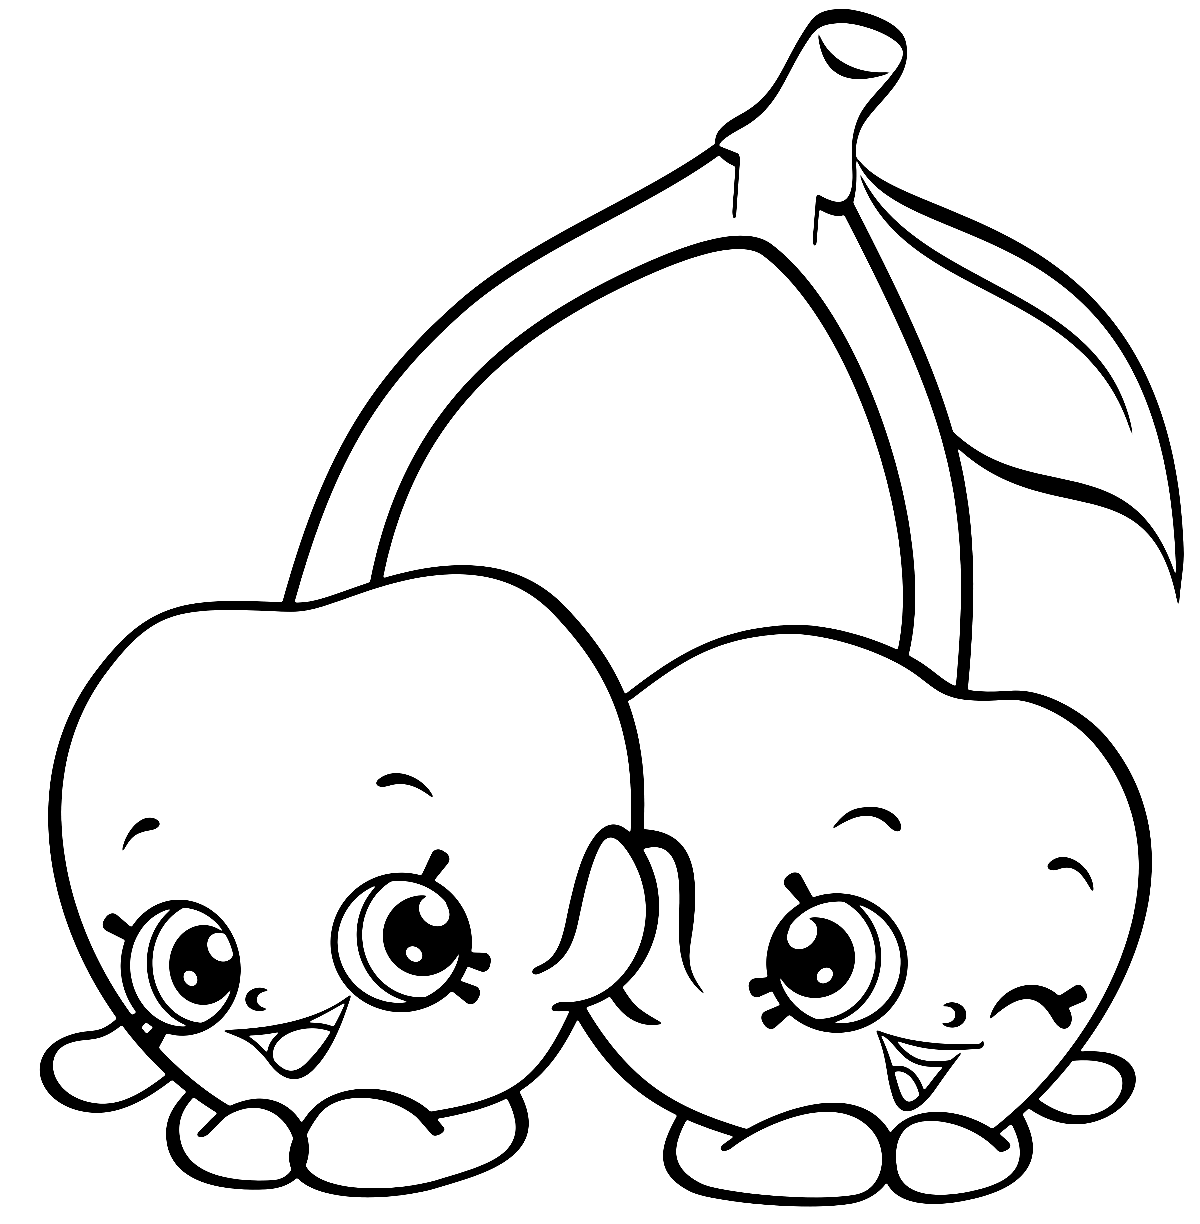 Twin Cherries Shopkins Coloring Page for Kids